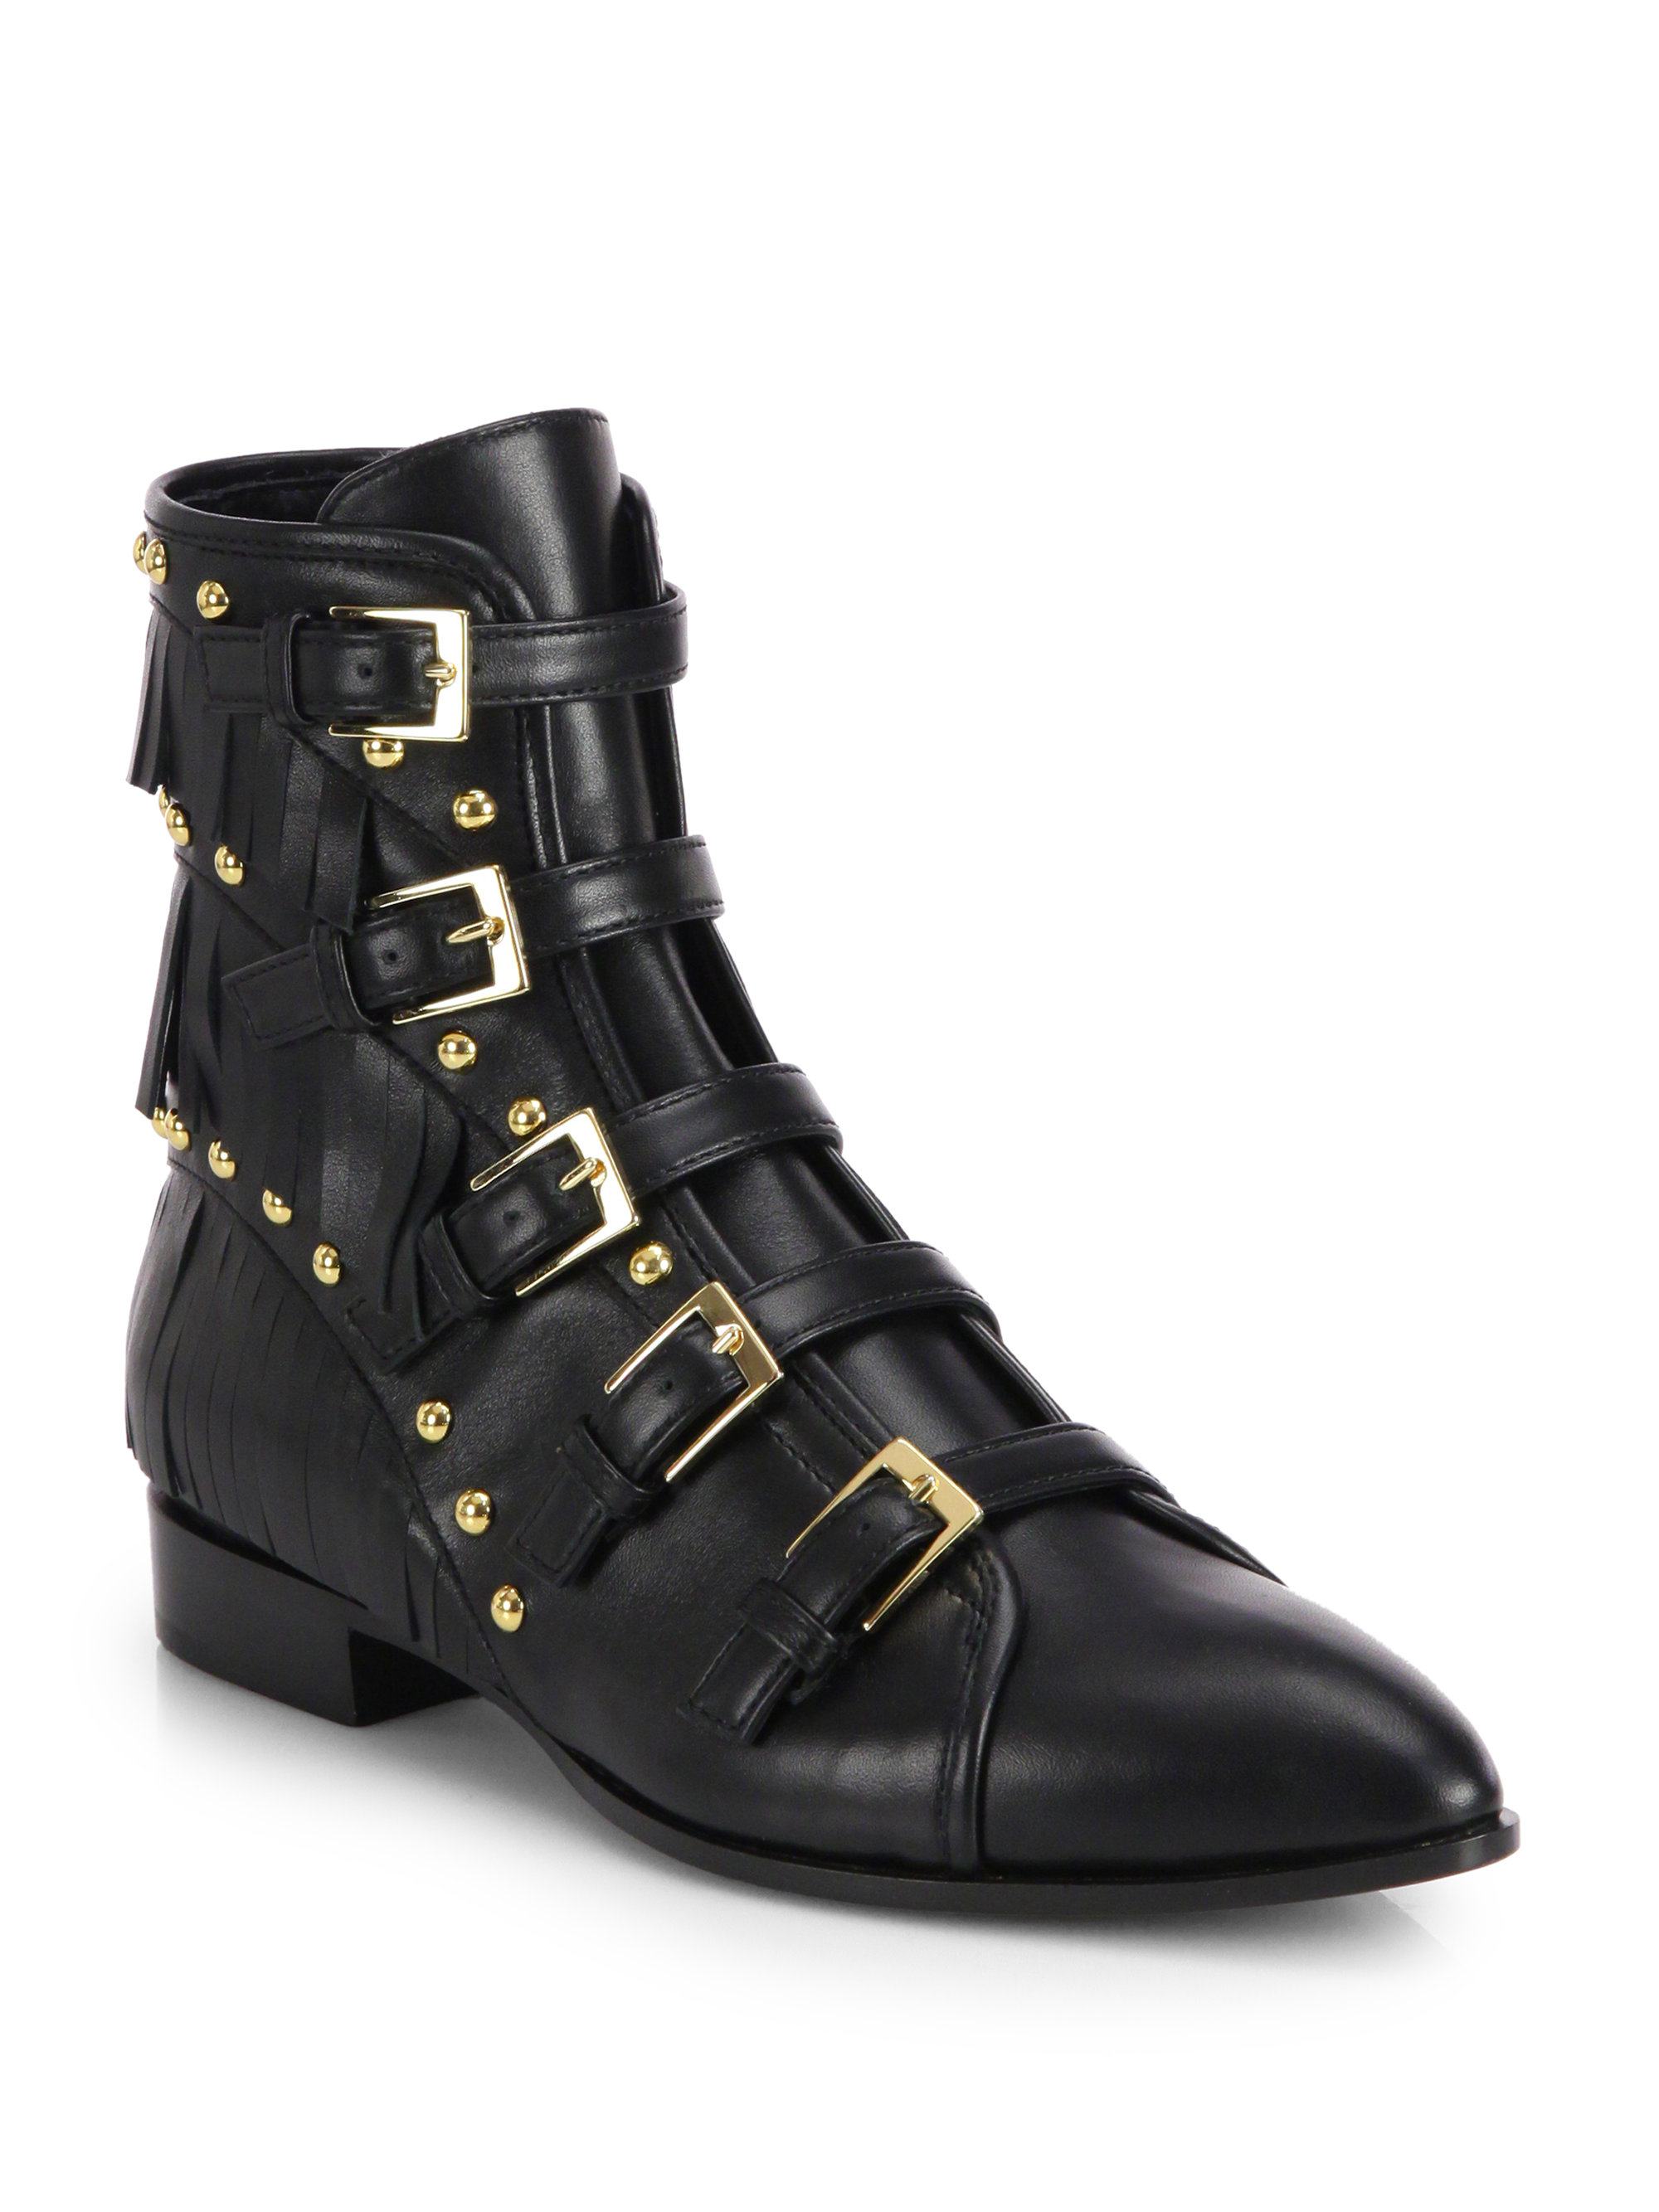 Giuseppe Zanotti 40MM PATENT LEATHER ANKLE BOOTS